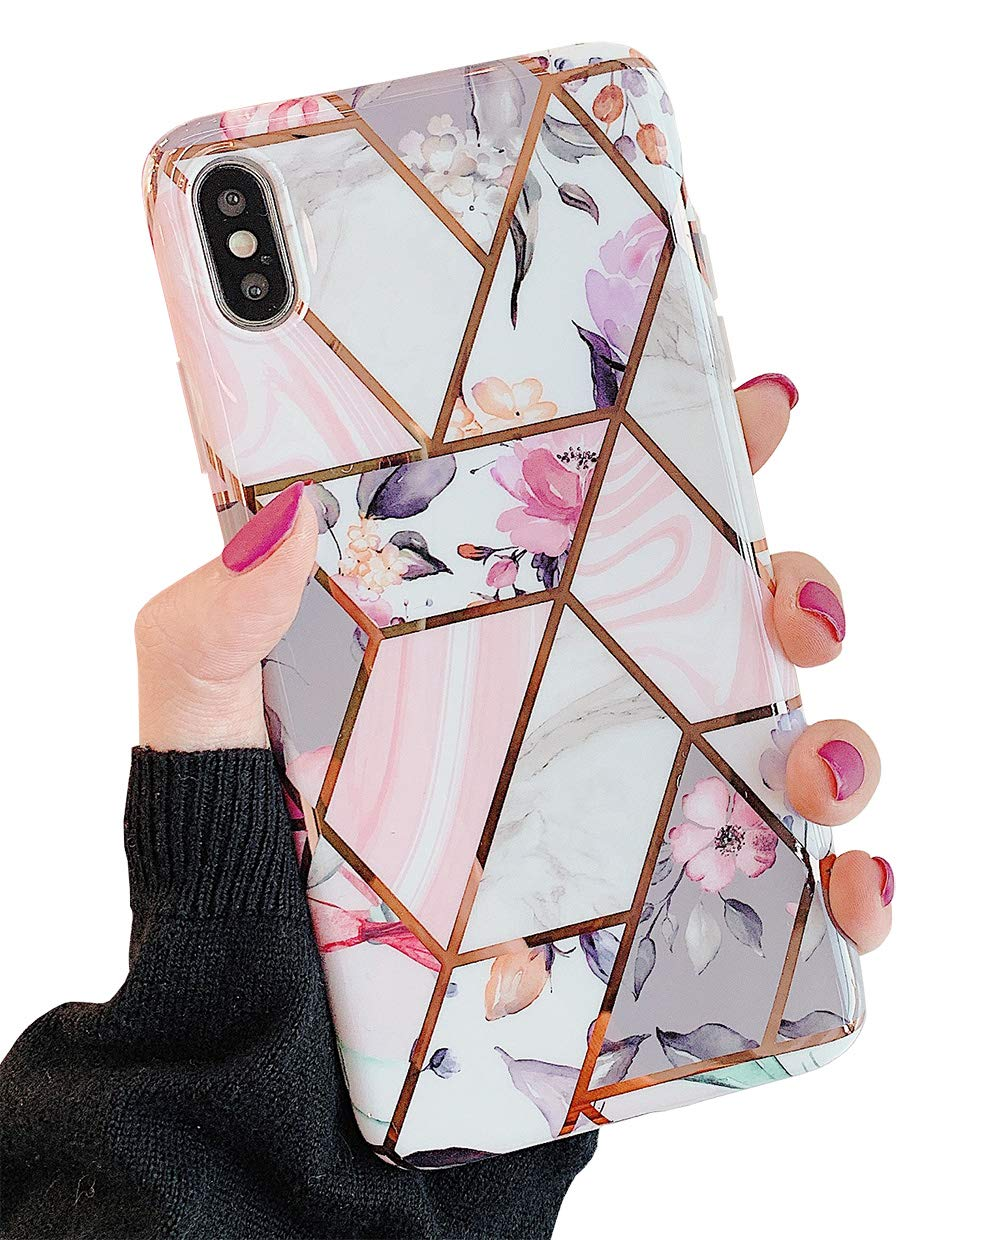 """KERZZIL iPhone Xs/X Flowers Case for Women and Girls, Trendy Shiny Rose Gold Marble and Pink Floral Design with Purple Leaves Phone Case Cover Compatible with iPhone Xs/X 5.8"""" (Pink Flower)"""